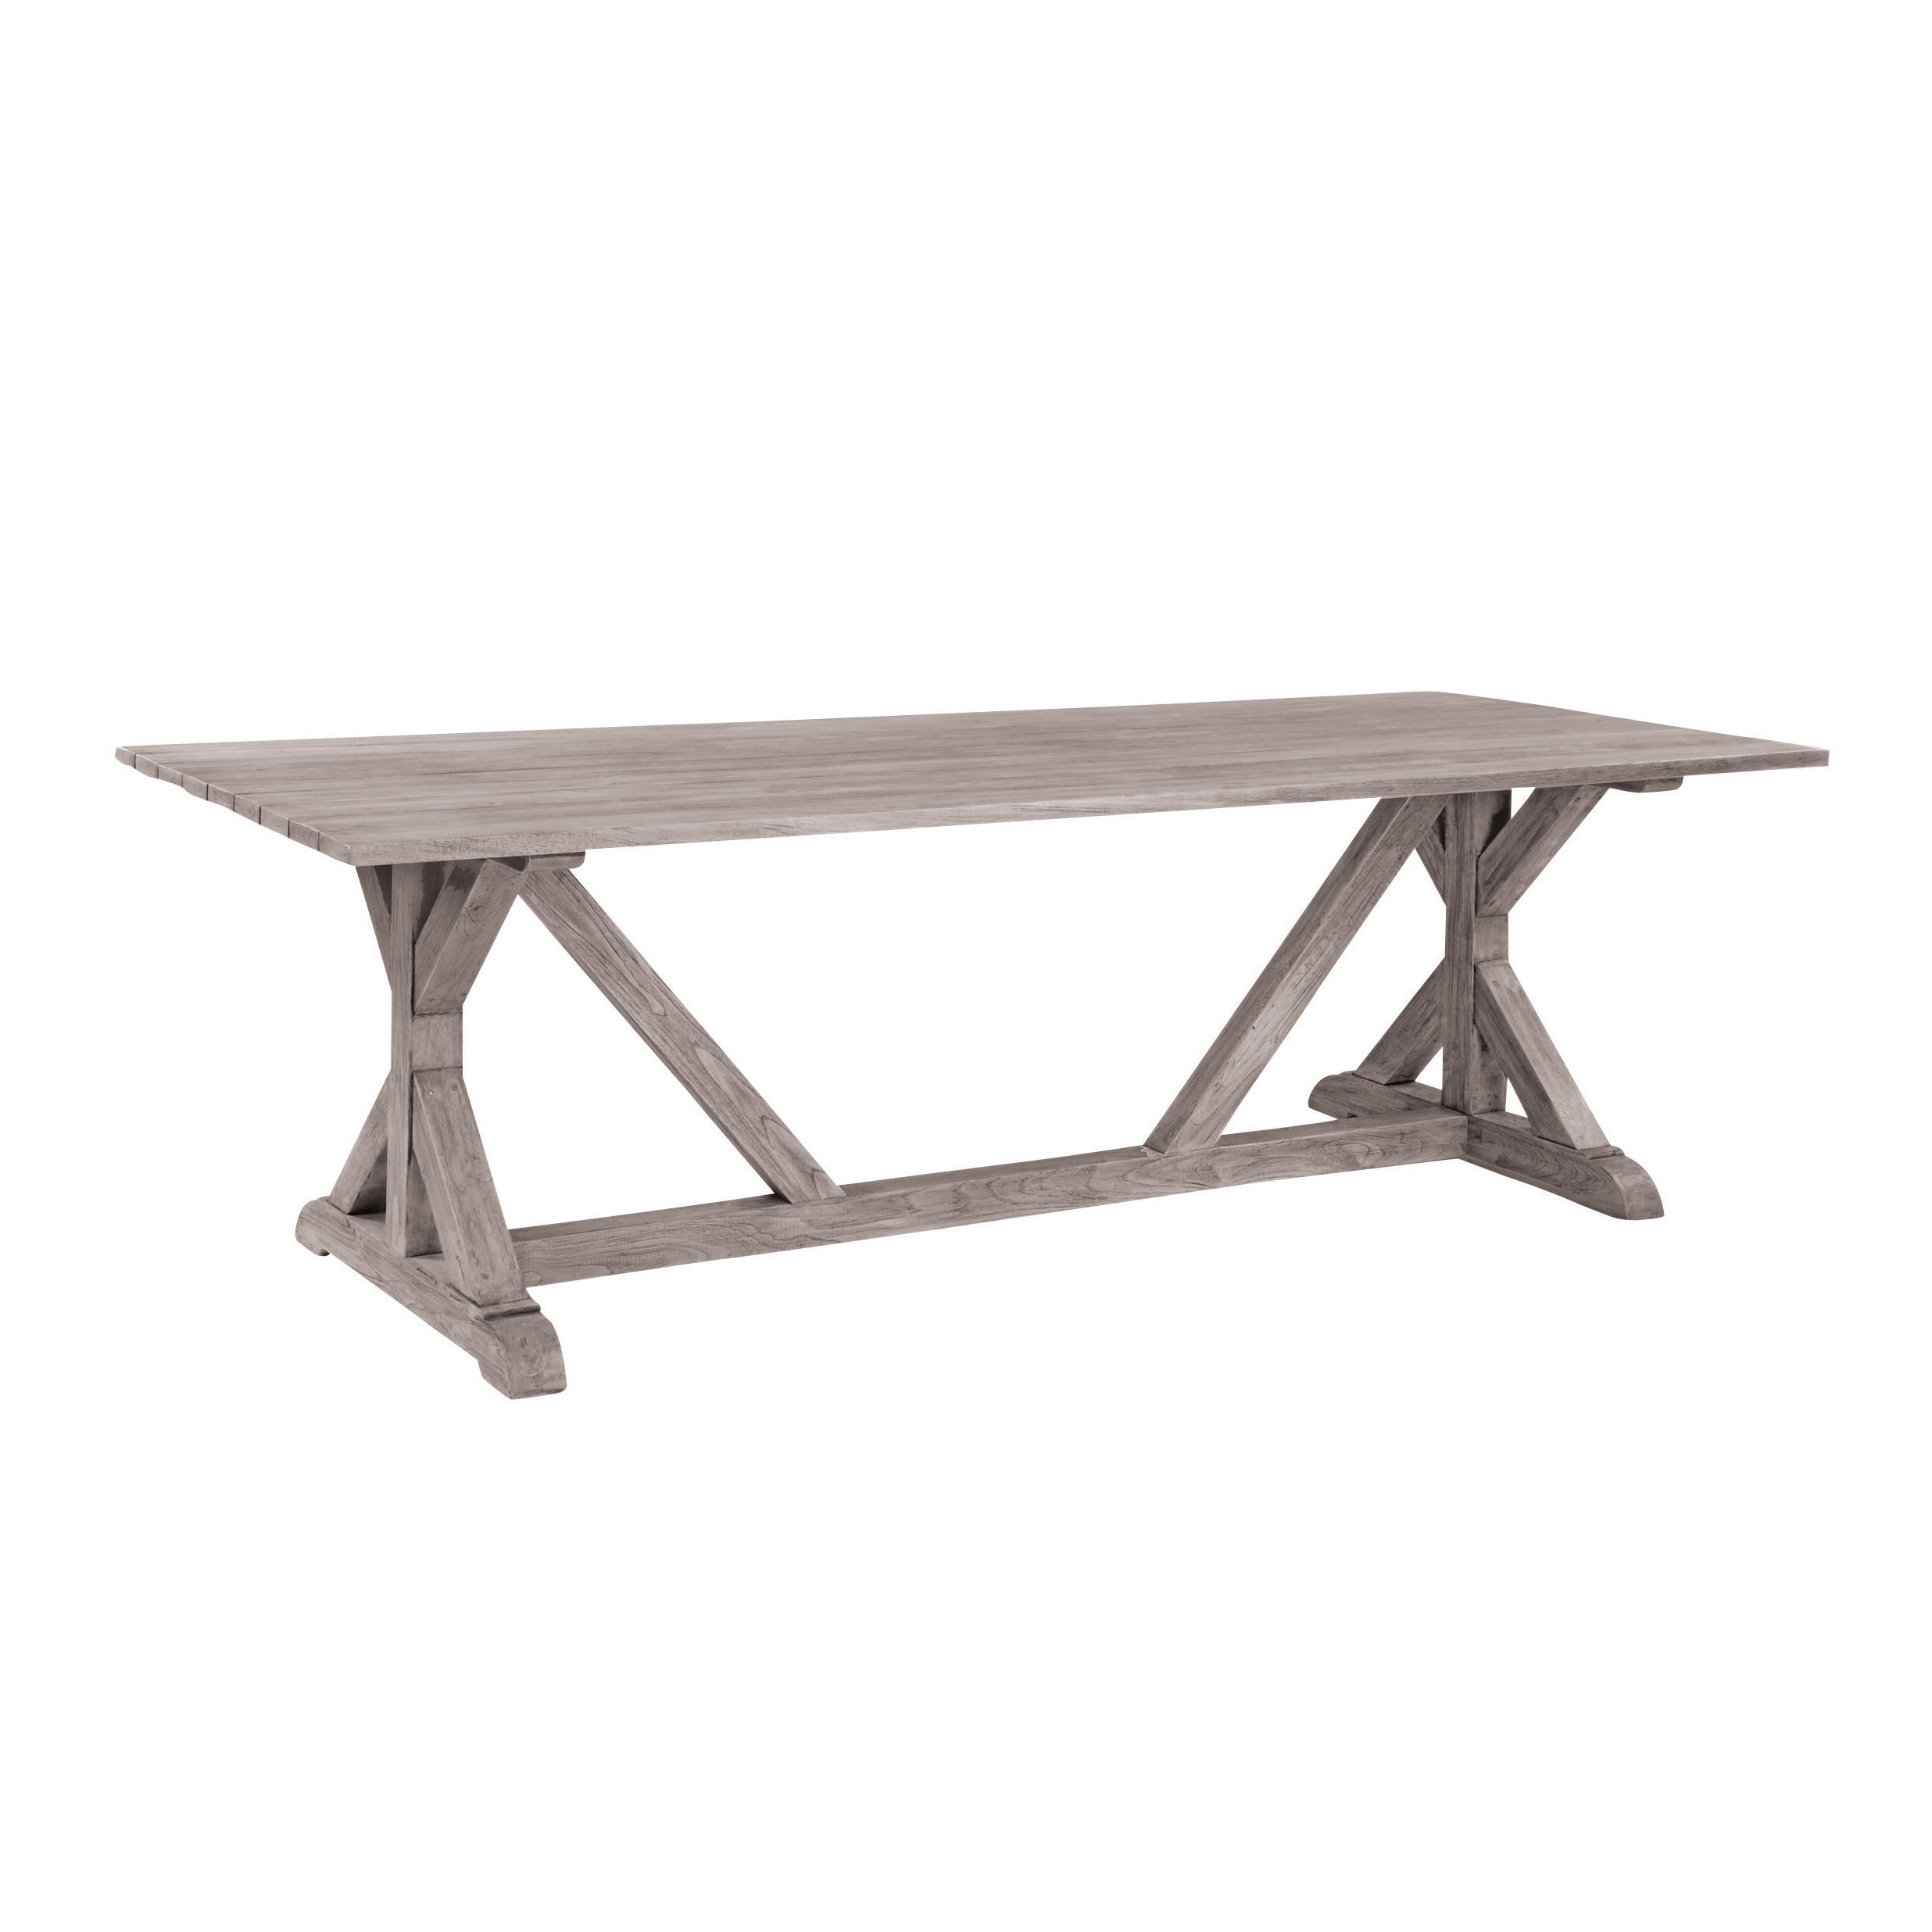 Provence Rectangular Dining Table – Casual Living Inside Most Up To Date Provence Accent Dining Tables (View 9 of 30)